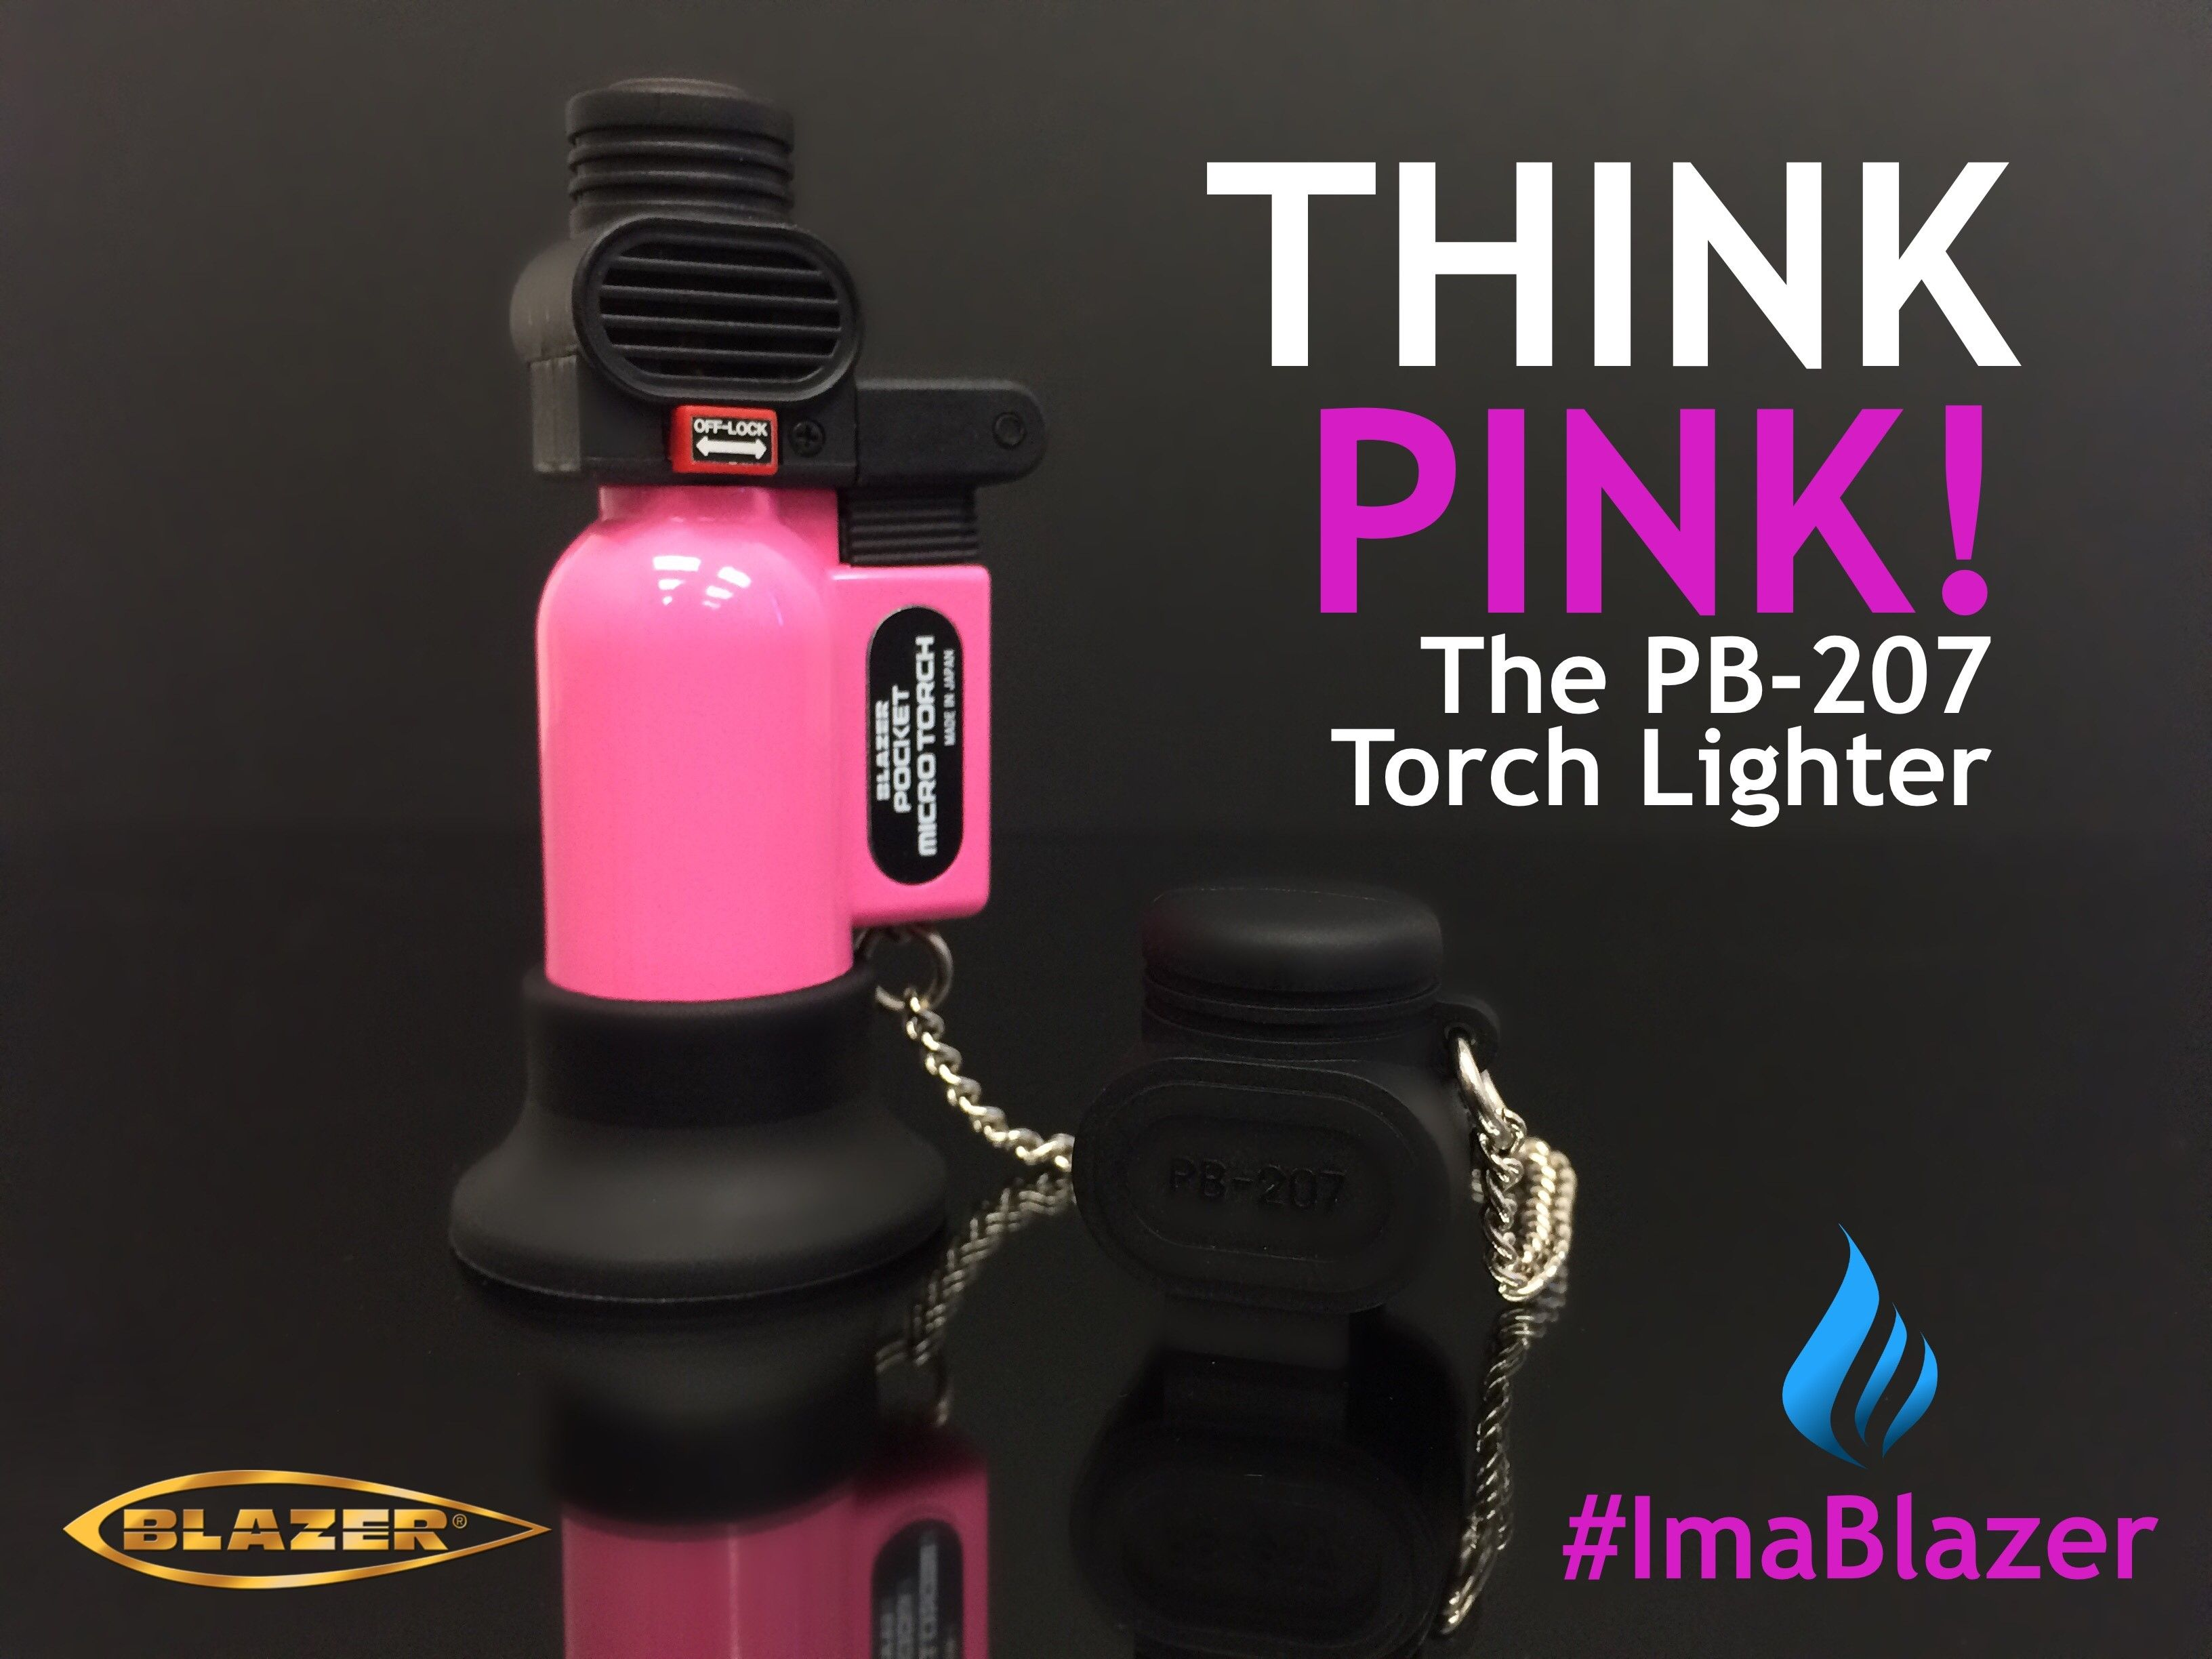 The First and Still The Best - The original Made in Japan PB207 (Pocket Blazer) features a wind resistant 2500F flame, ideal for outdoor use and field work. Fits easily in tool boxes, survival kits, and of course in a pocket.  Available in 13 great looking colors including Pink. Ask for the Pocket Blazer today.   #Butane #Torch #Cigar #Lighter #BlazerTorch #Pink #ButaneTorch